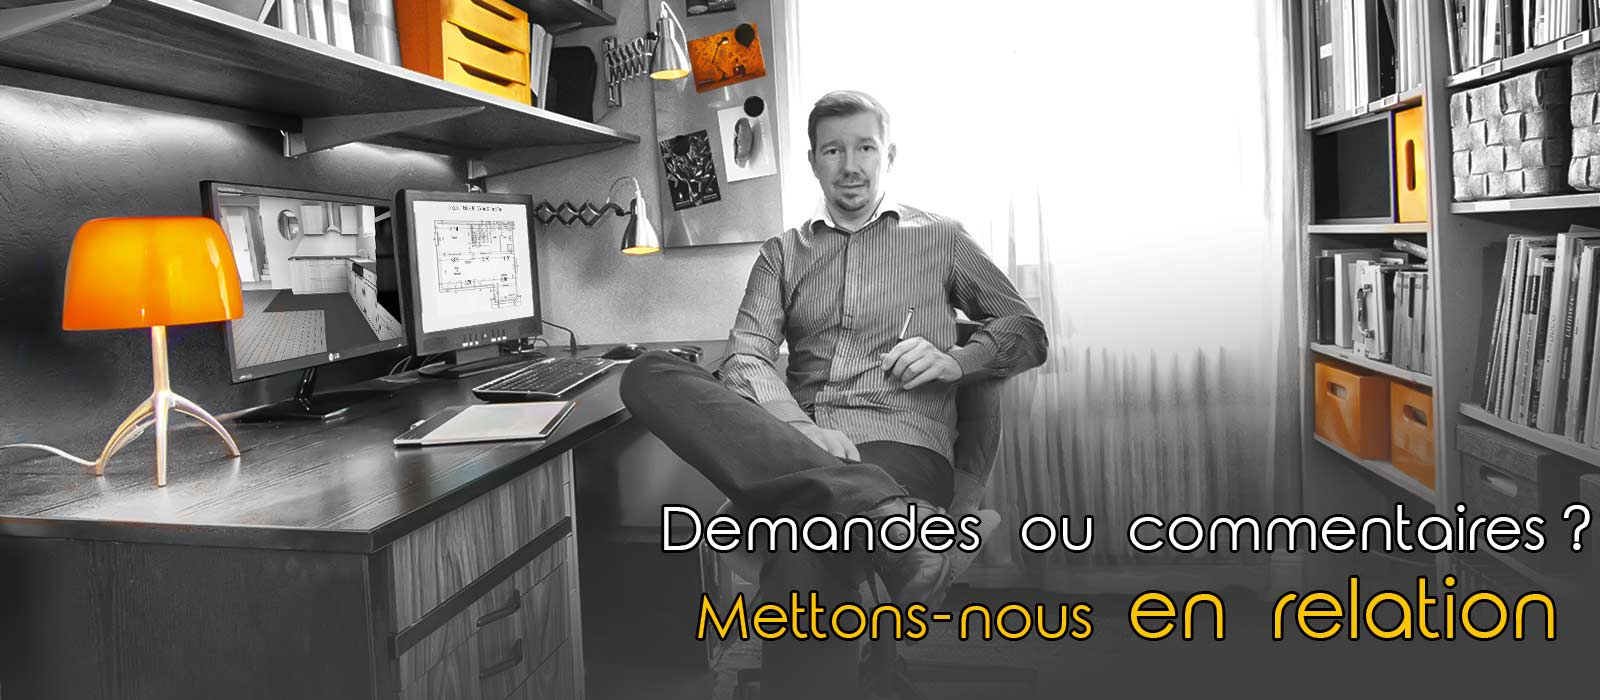 Alexandre KITTEL, decorateur, assis a son bureau